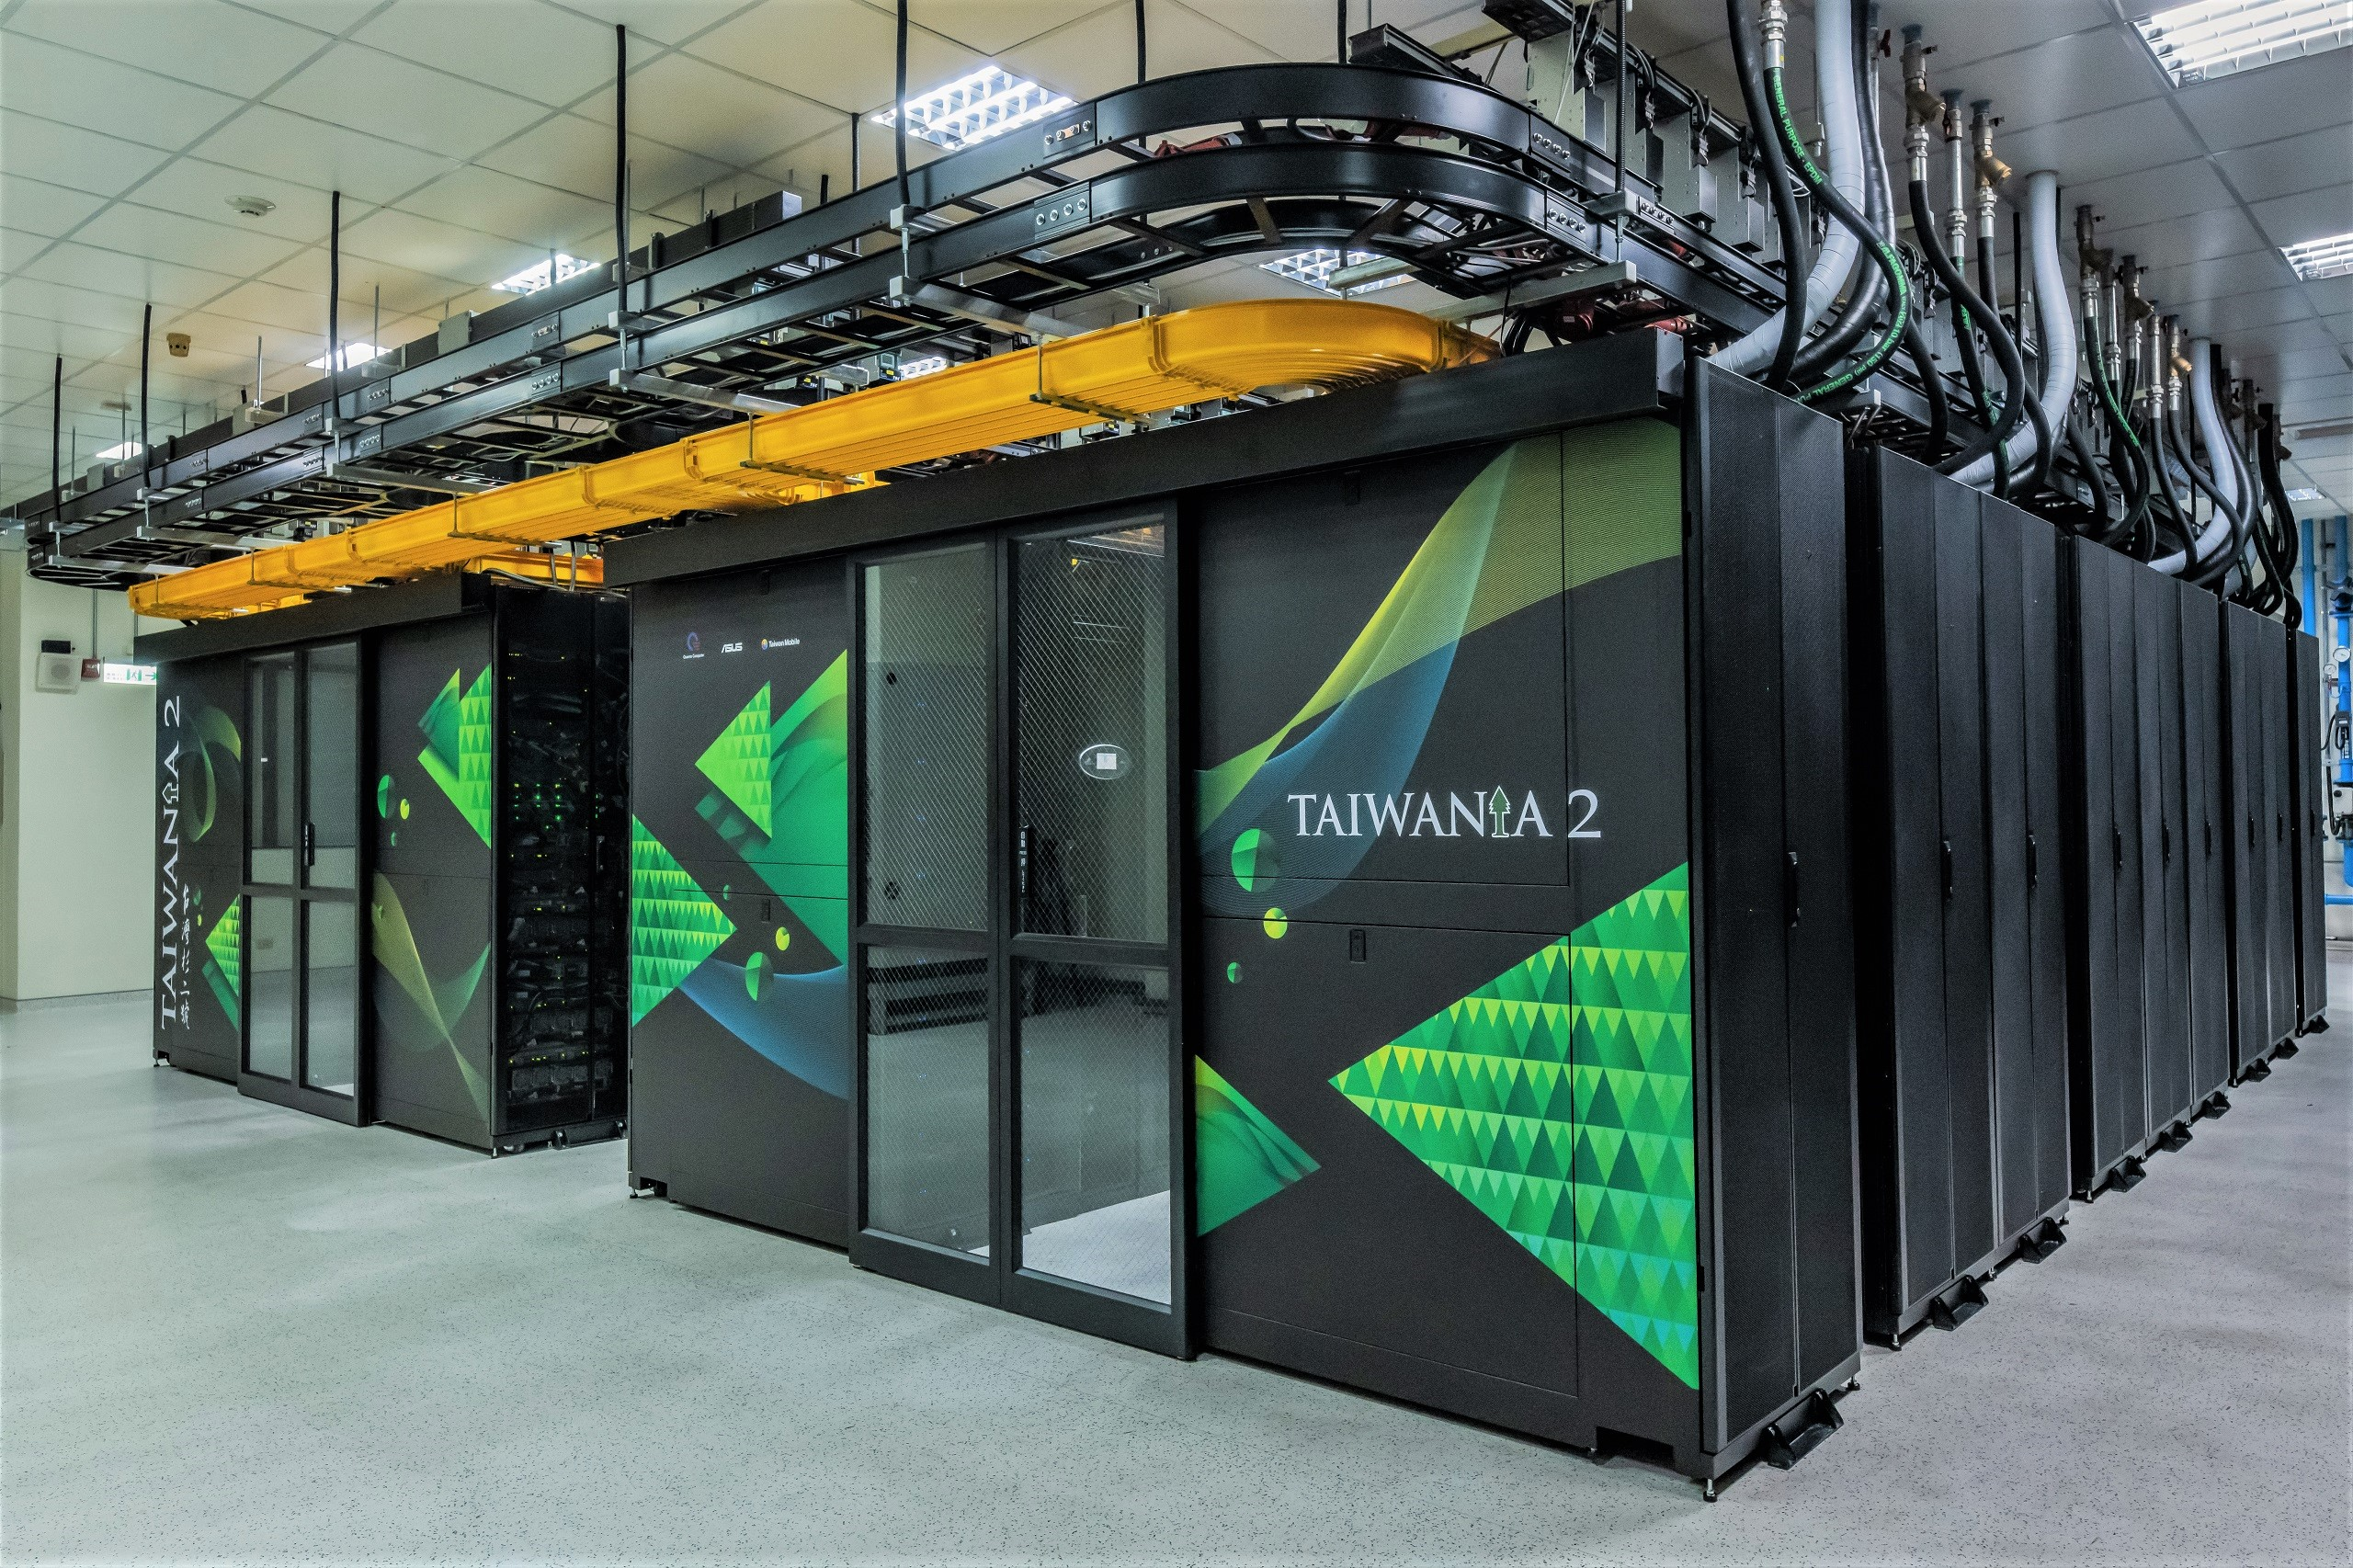 Supercomputer Taiwania 2 ranked no.10 in energy efficiency of Green 500 (11.285 GFLOPS/W)